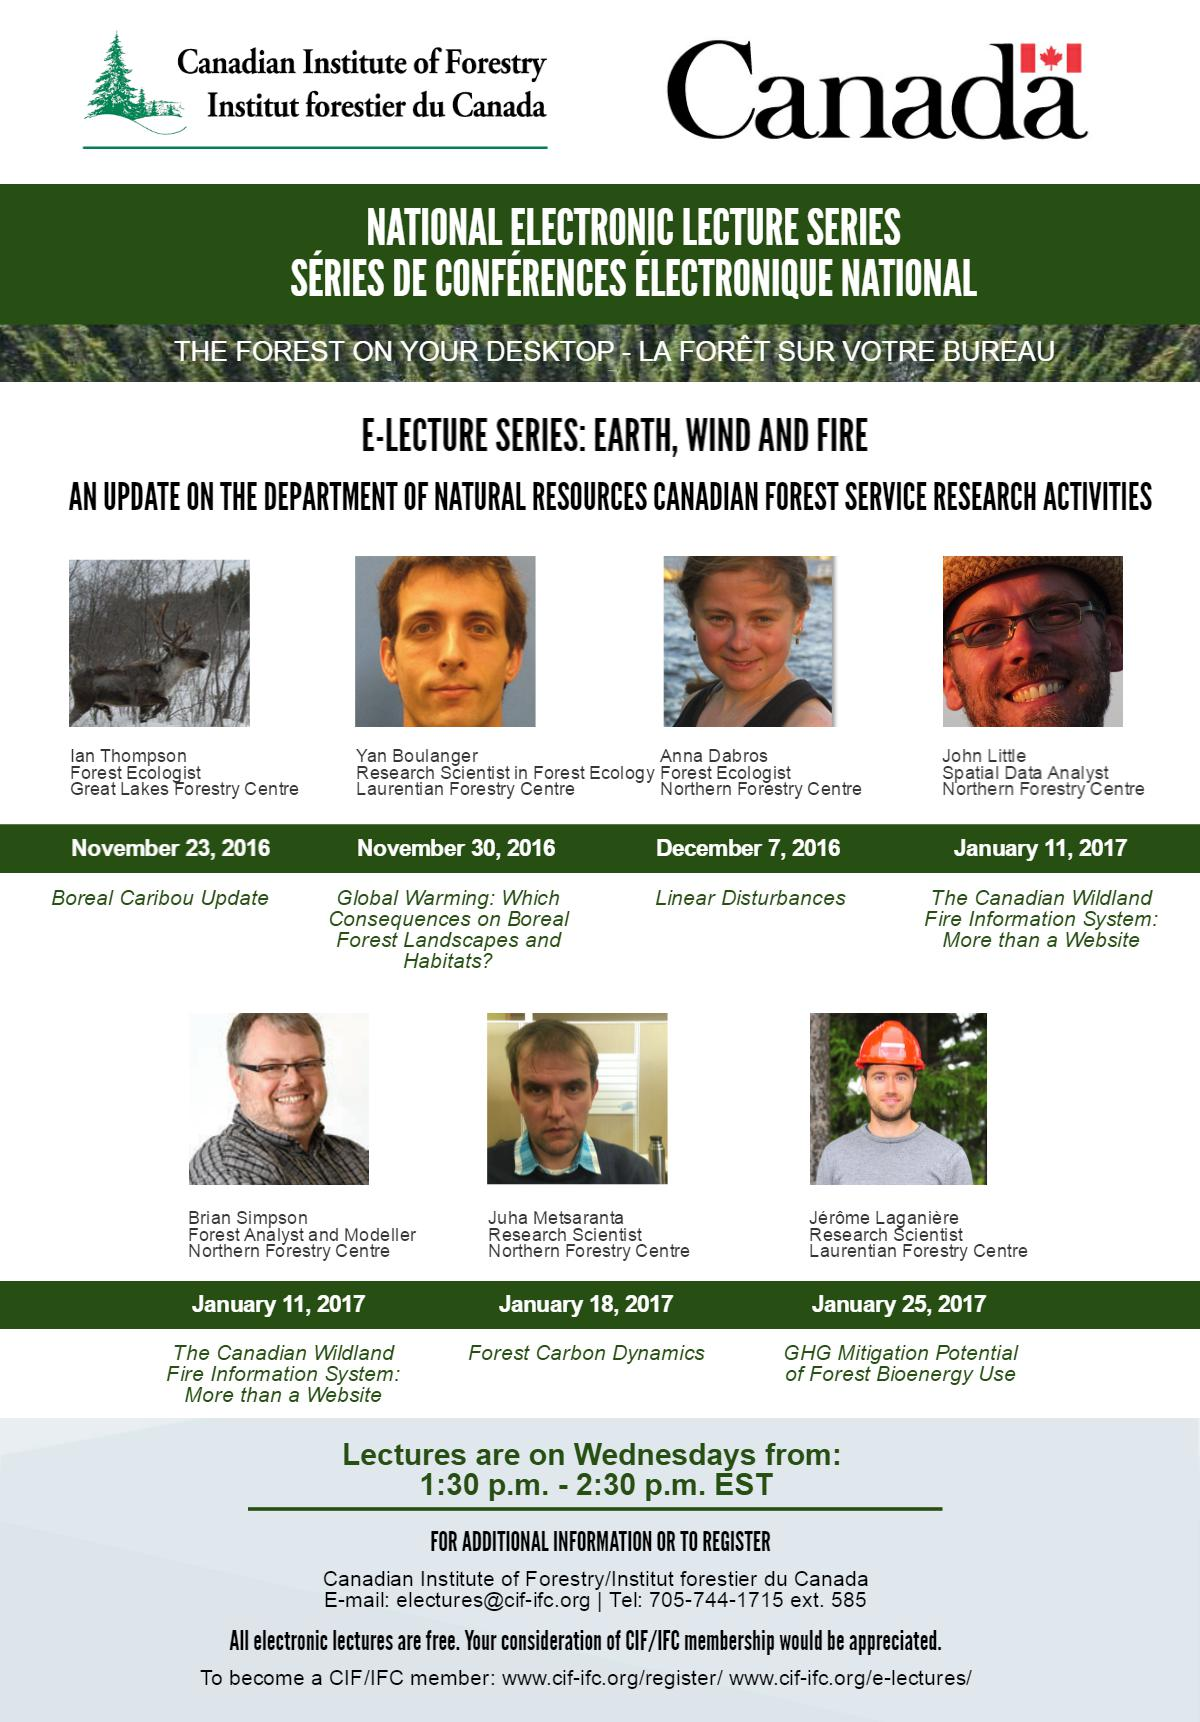 CIF-IFC E-Lecture: Forest Carbon Dynamics | Forestry